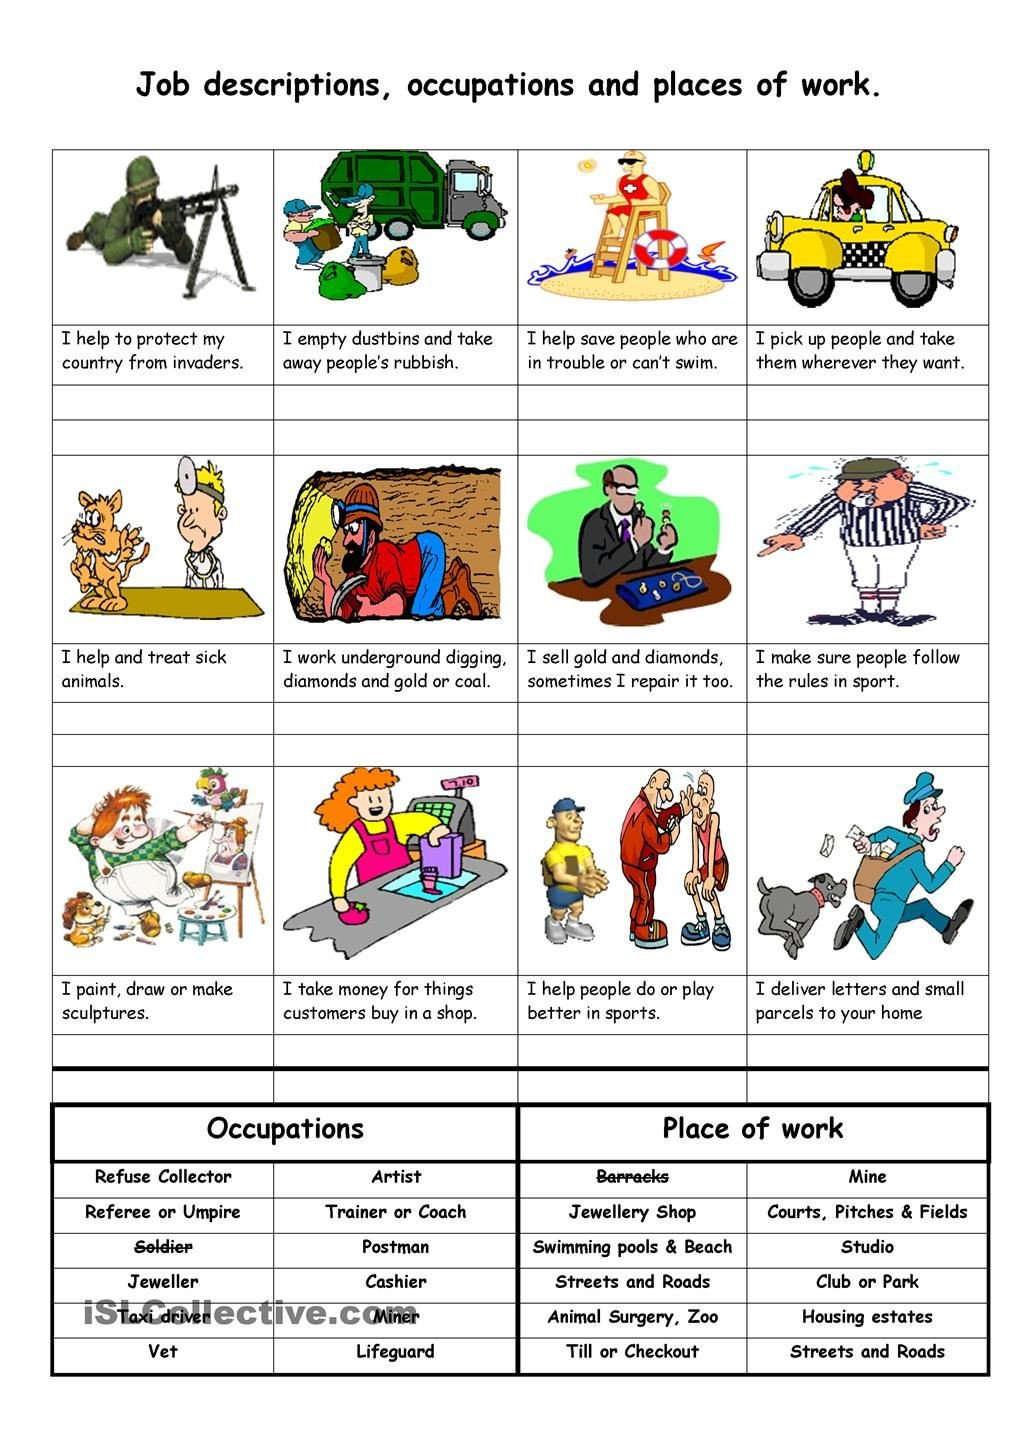 Vocational Skills Worksheet Job Descriptions Occupations and Places Of Work